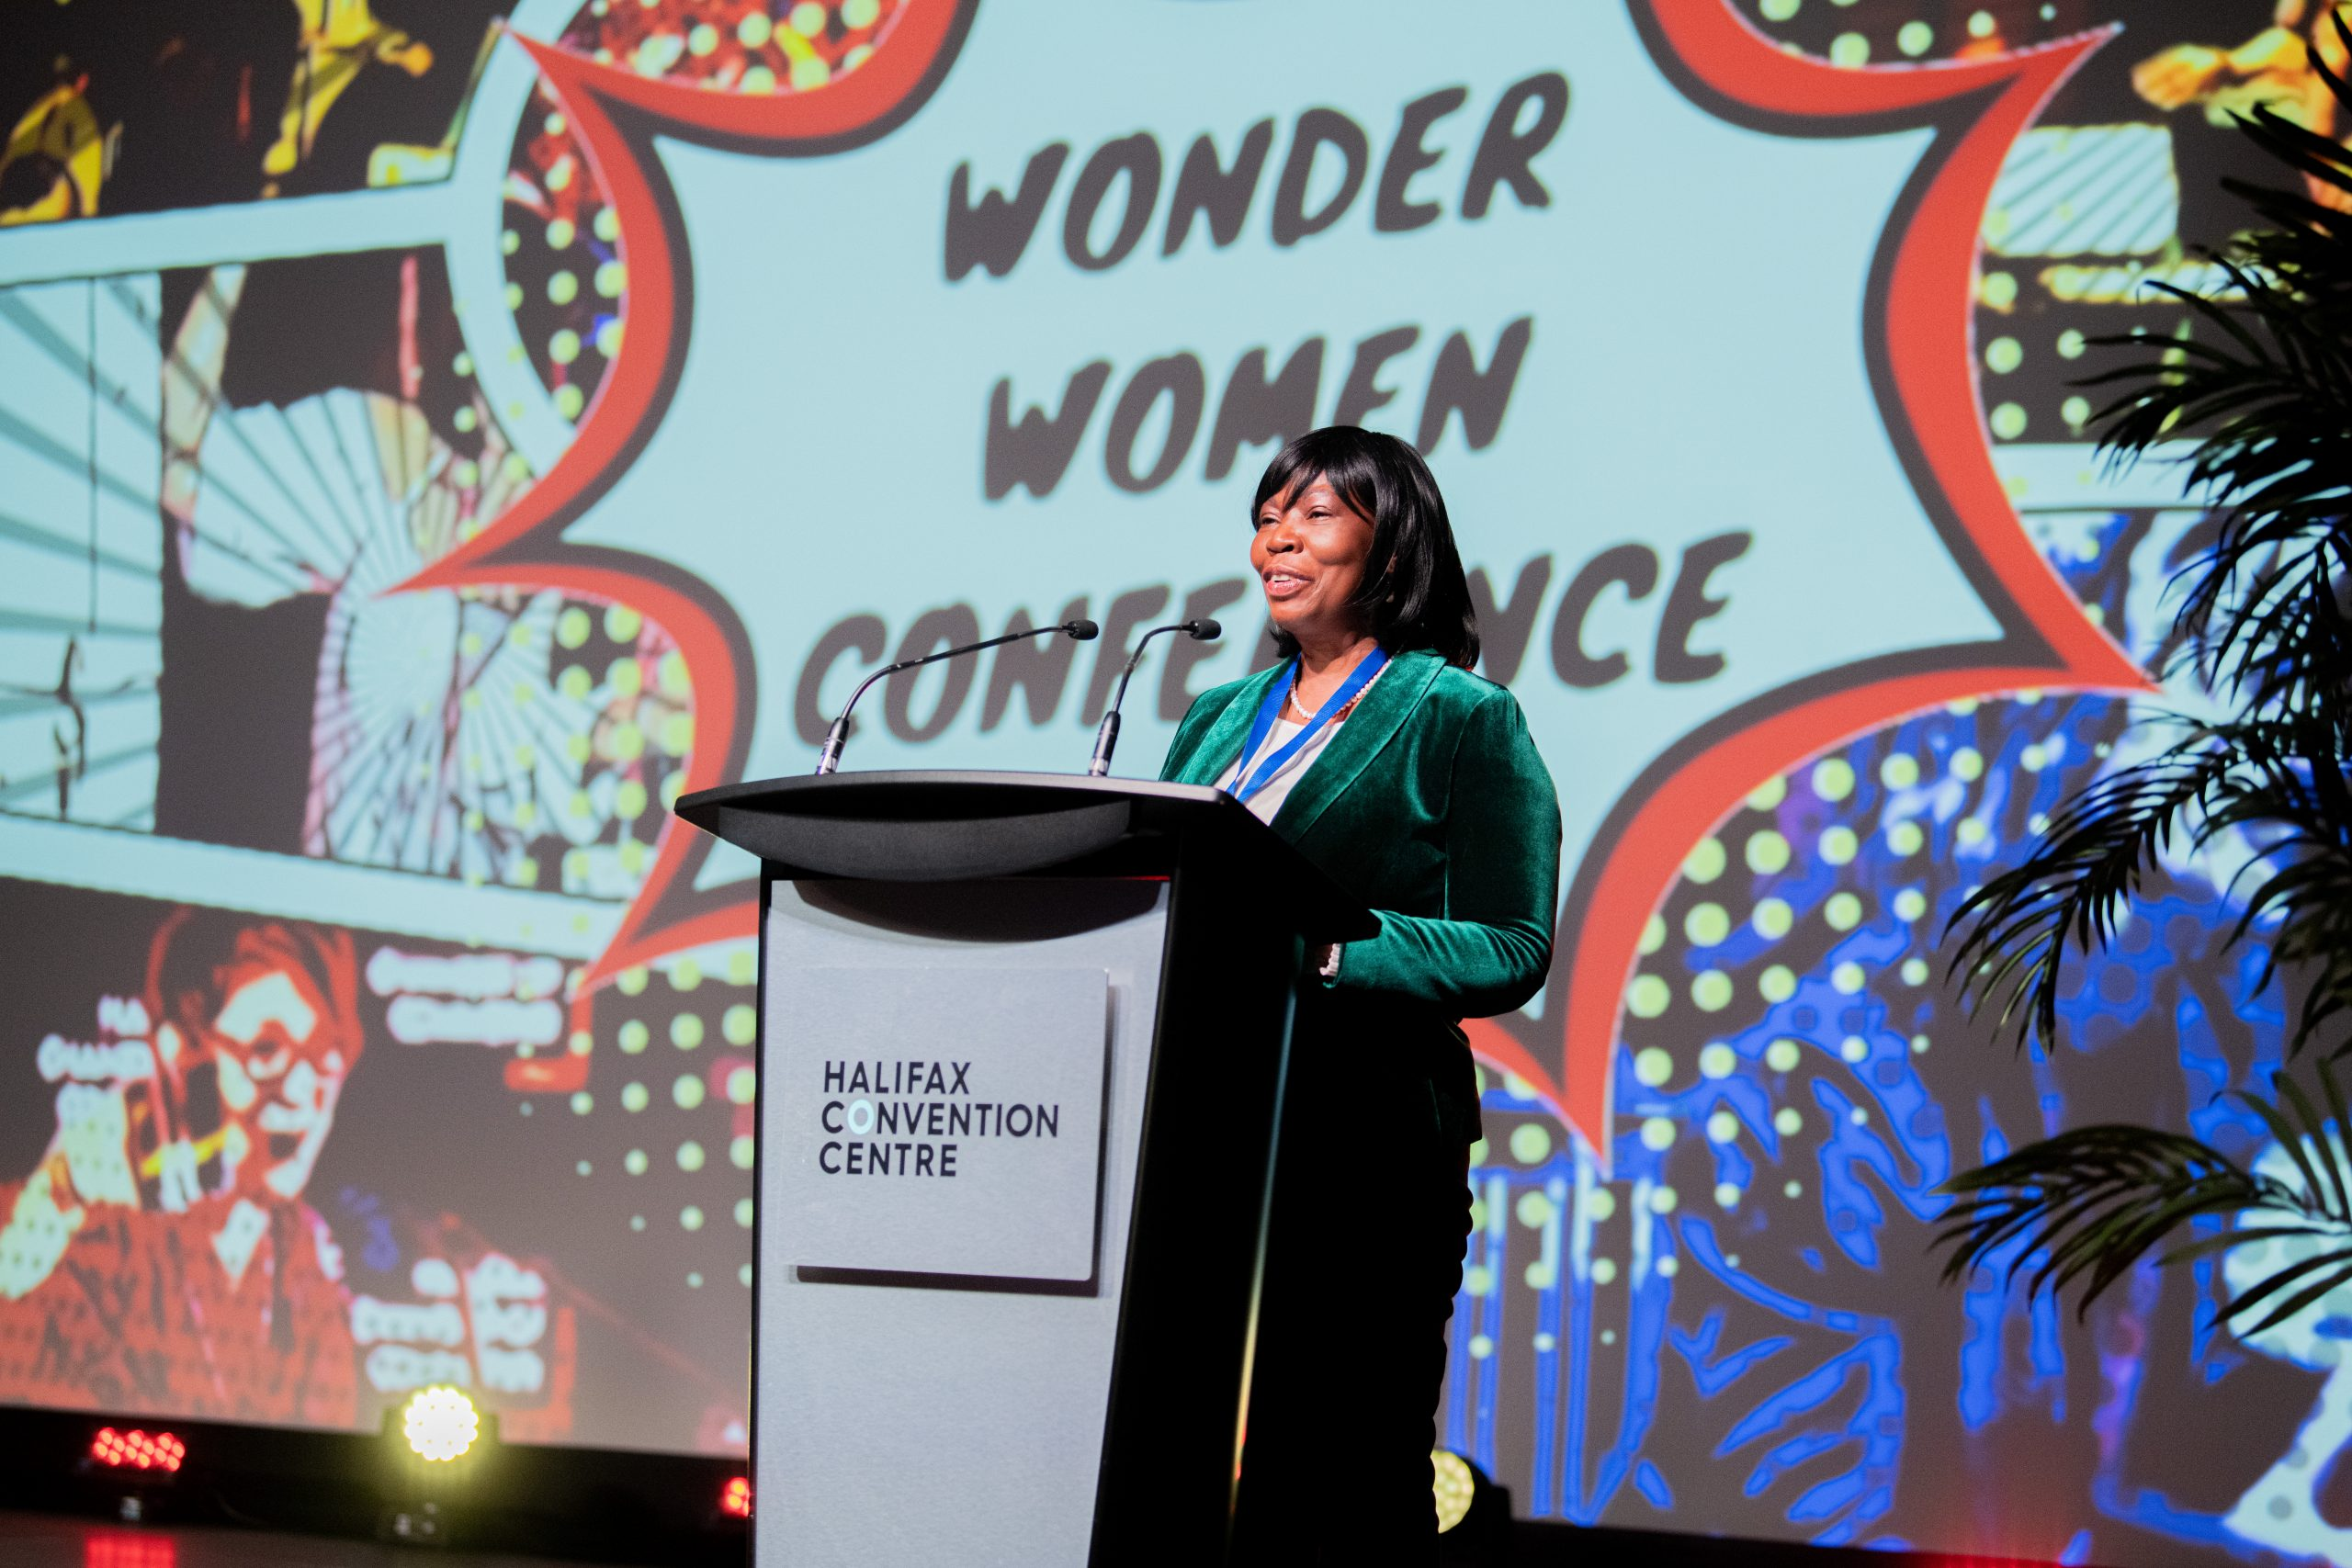 Fifth Halifax Chamber Wonder Women Conference challenges, connects